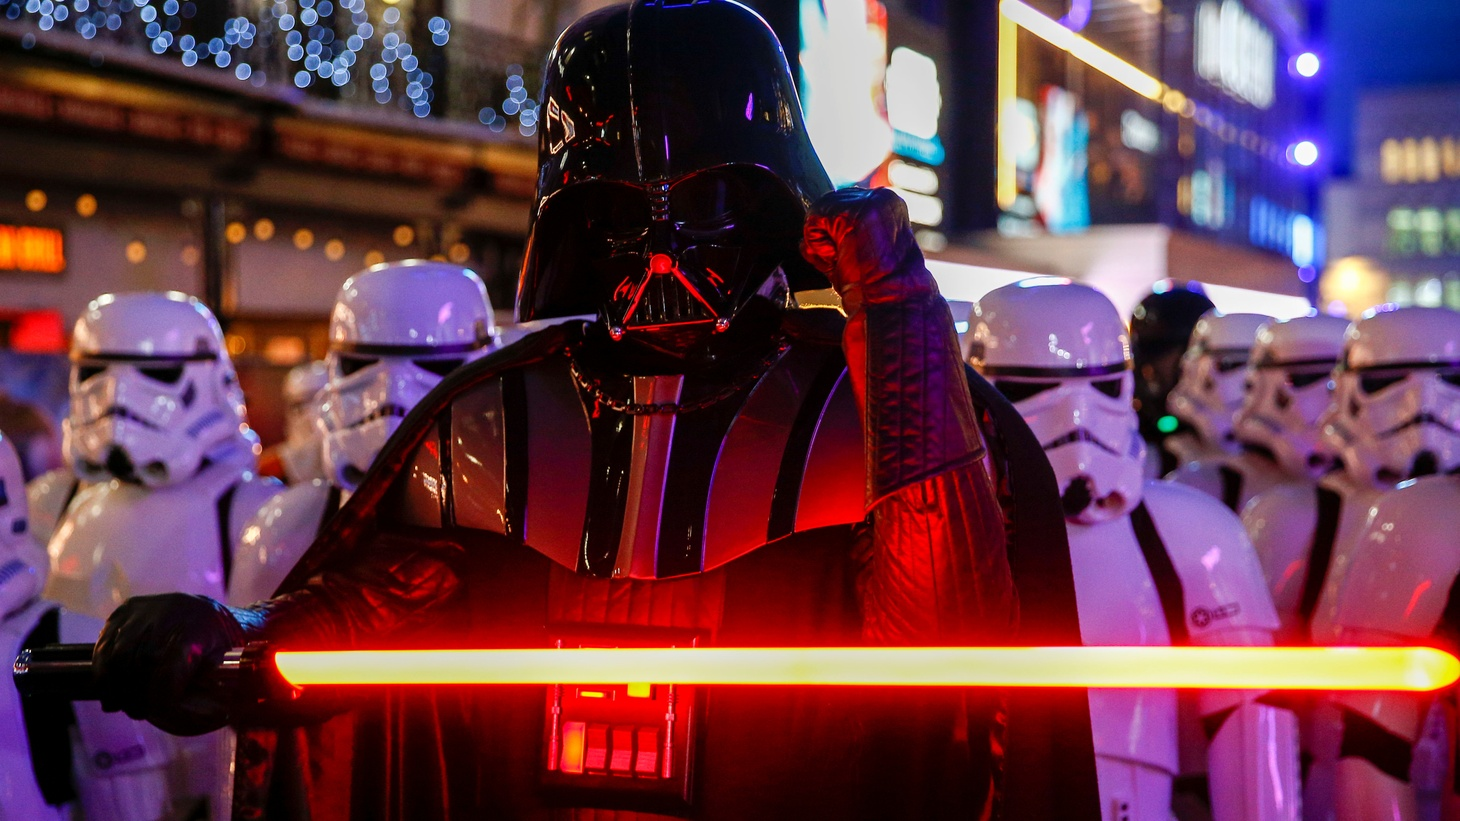 """People dressed as characters attend the premiere of """"Star Wars: The Rise of Skywalker"""" in London, Britain, December 18, 2019."""